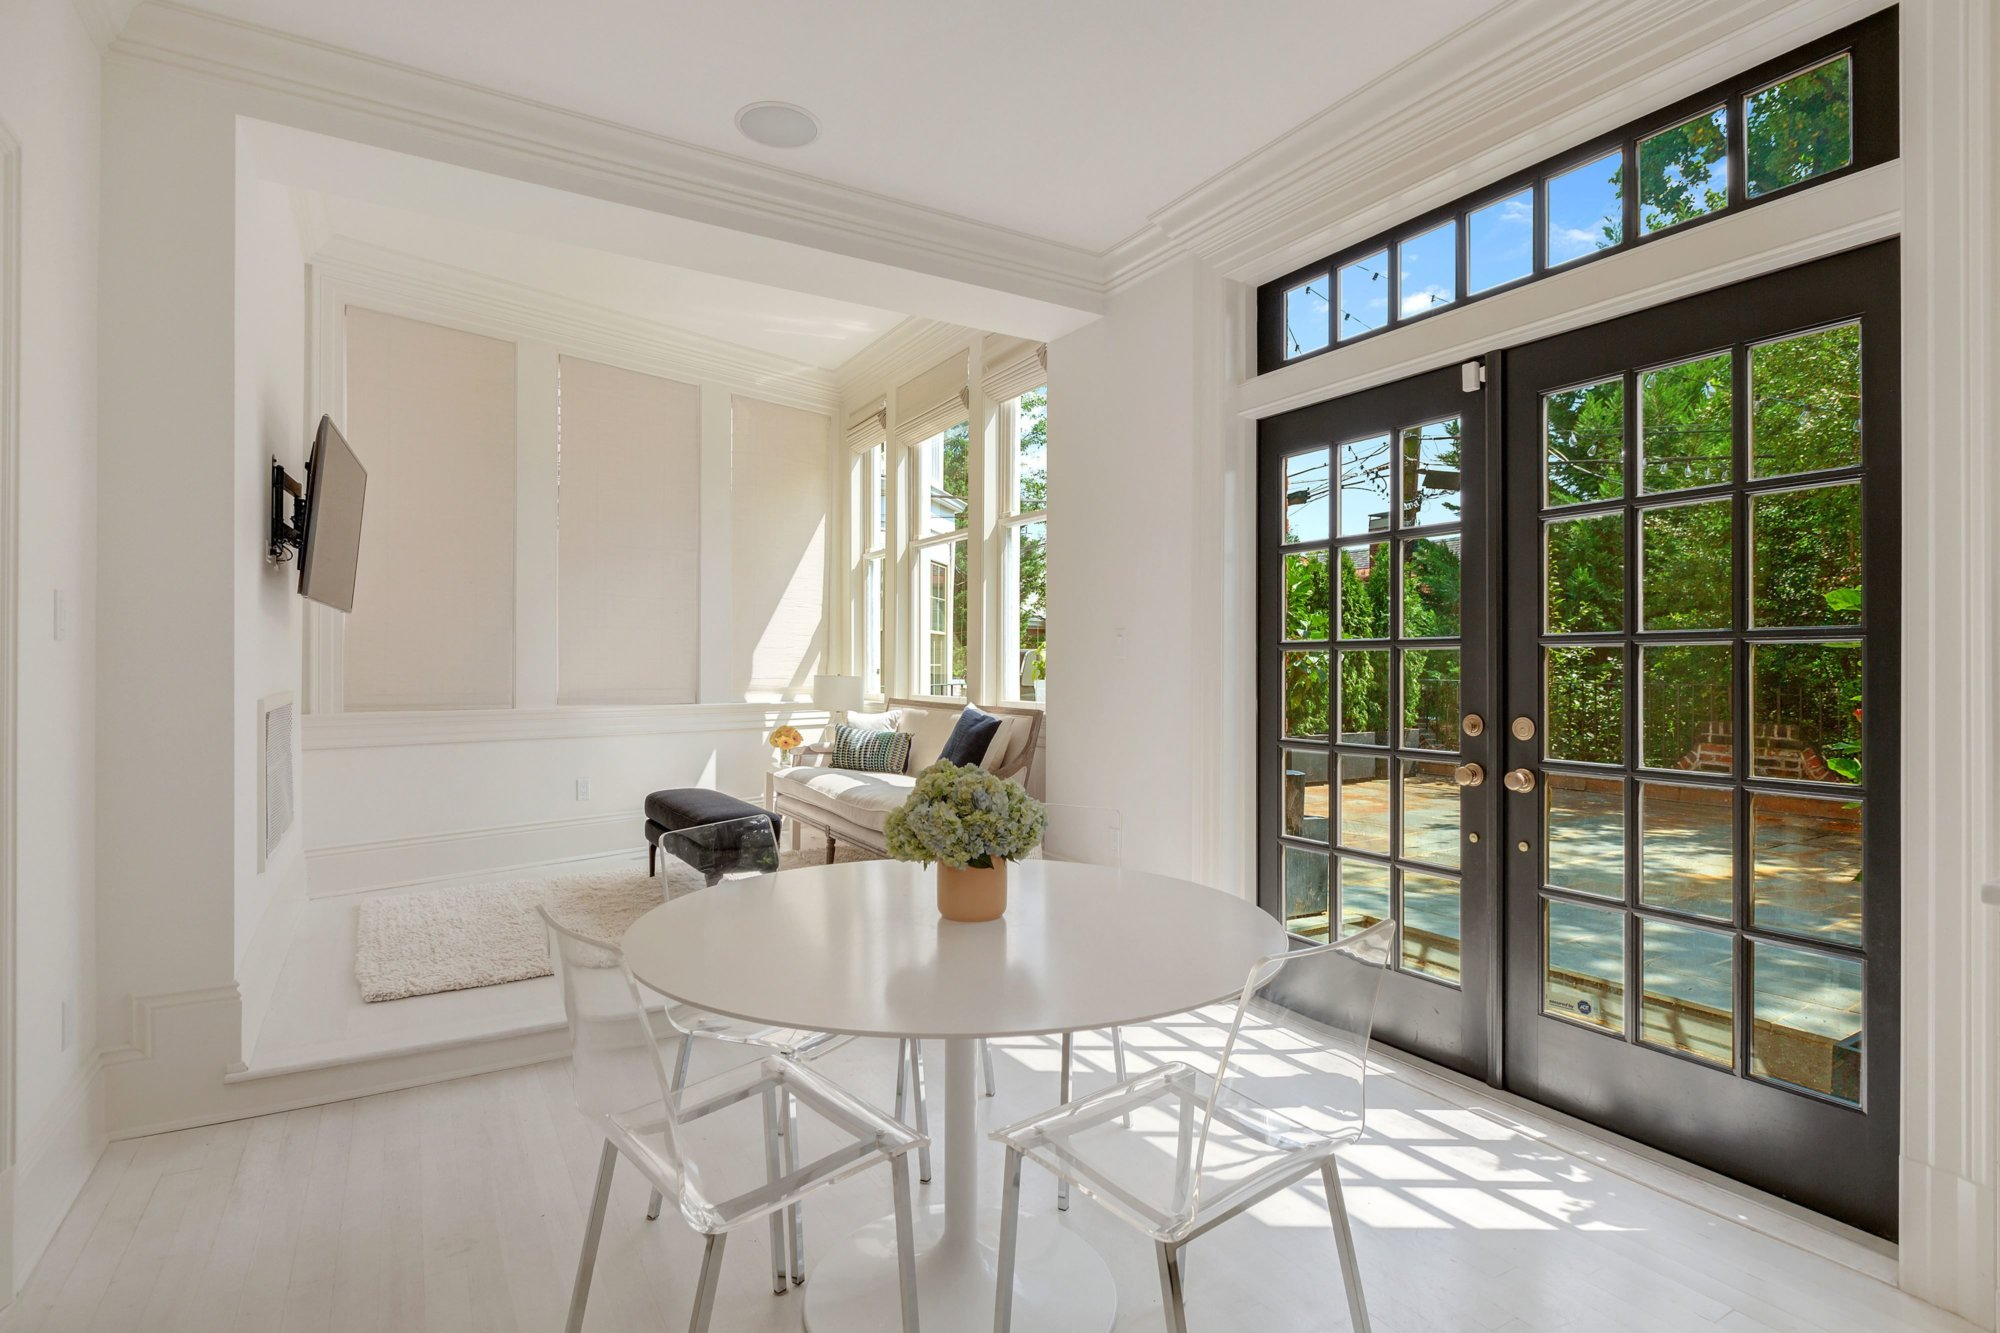 The large windows allow for an abundance of natural light. (Courtesy of Home Visit)